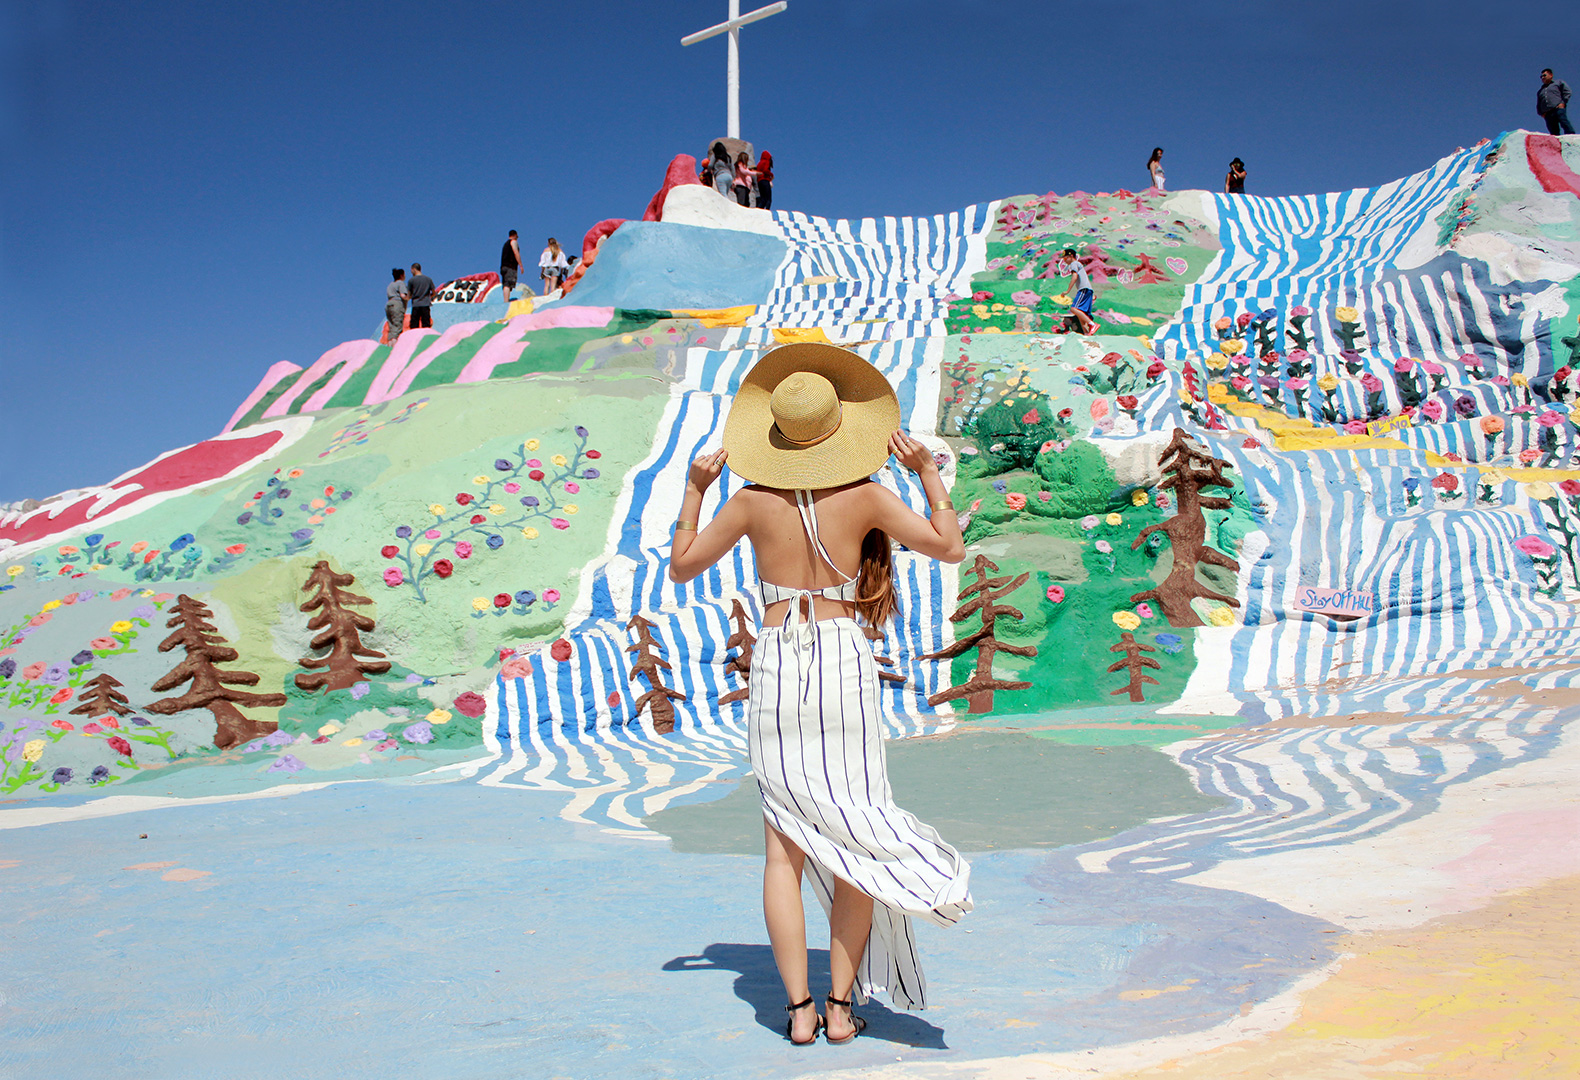 Taking in the beautiful landscape of Salvation Mountain. Dress by Tobi, J. Crew sandals, Nine West hat, Madewell cuff bracelets